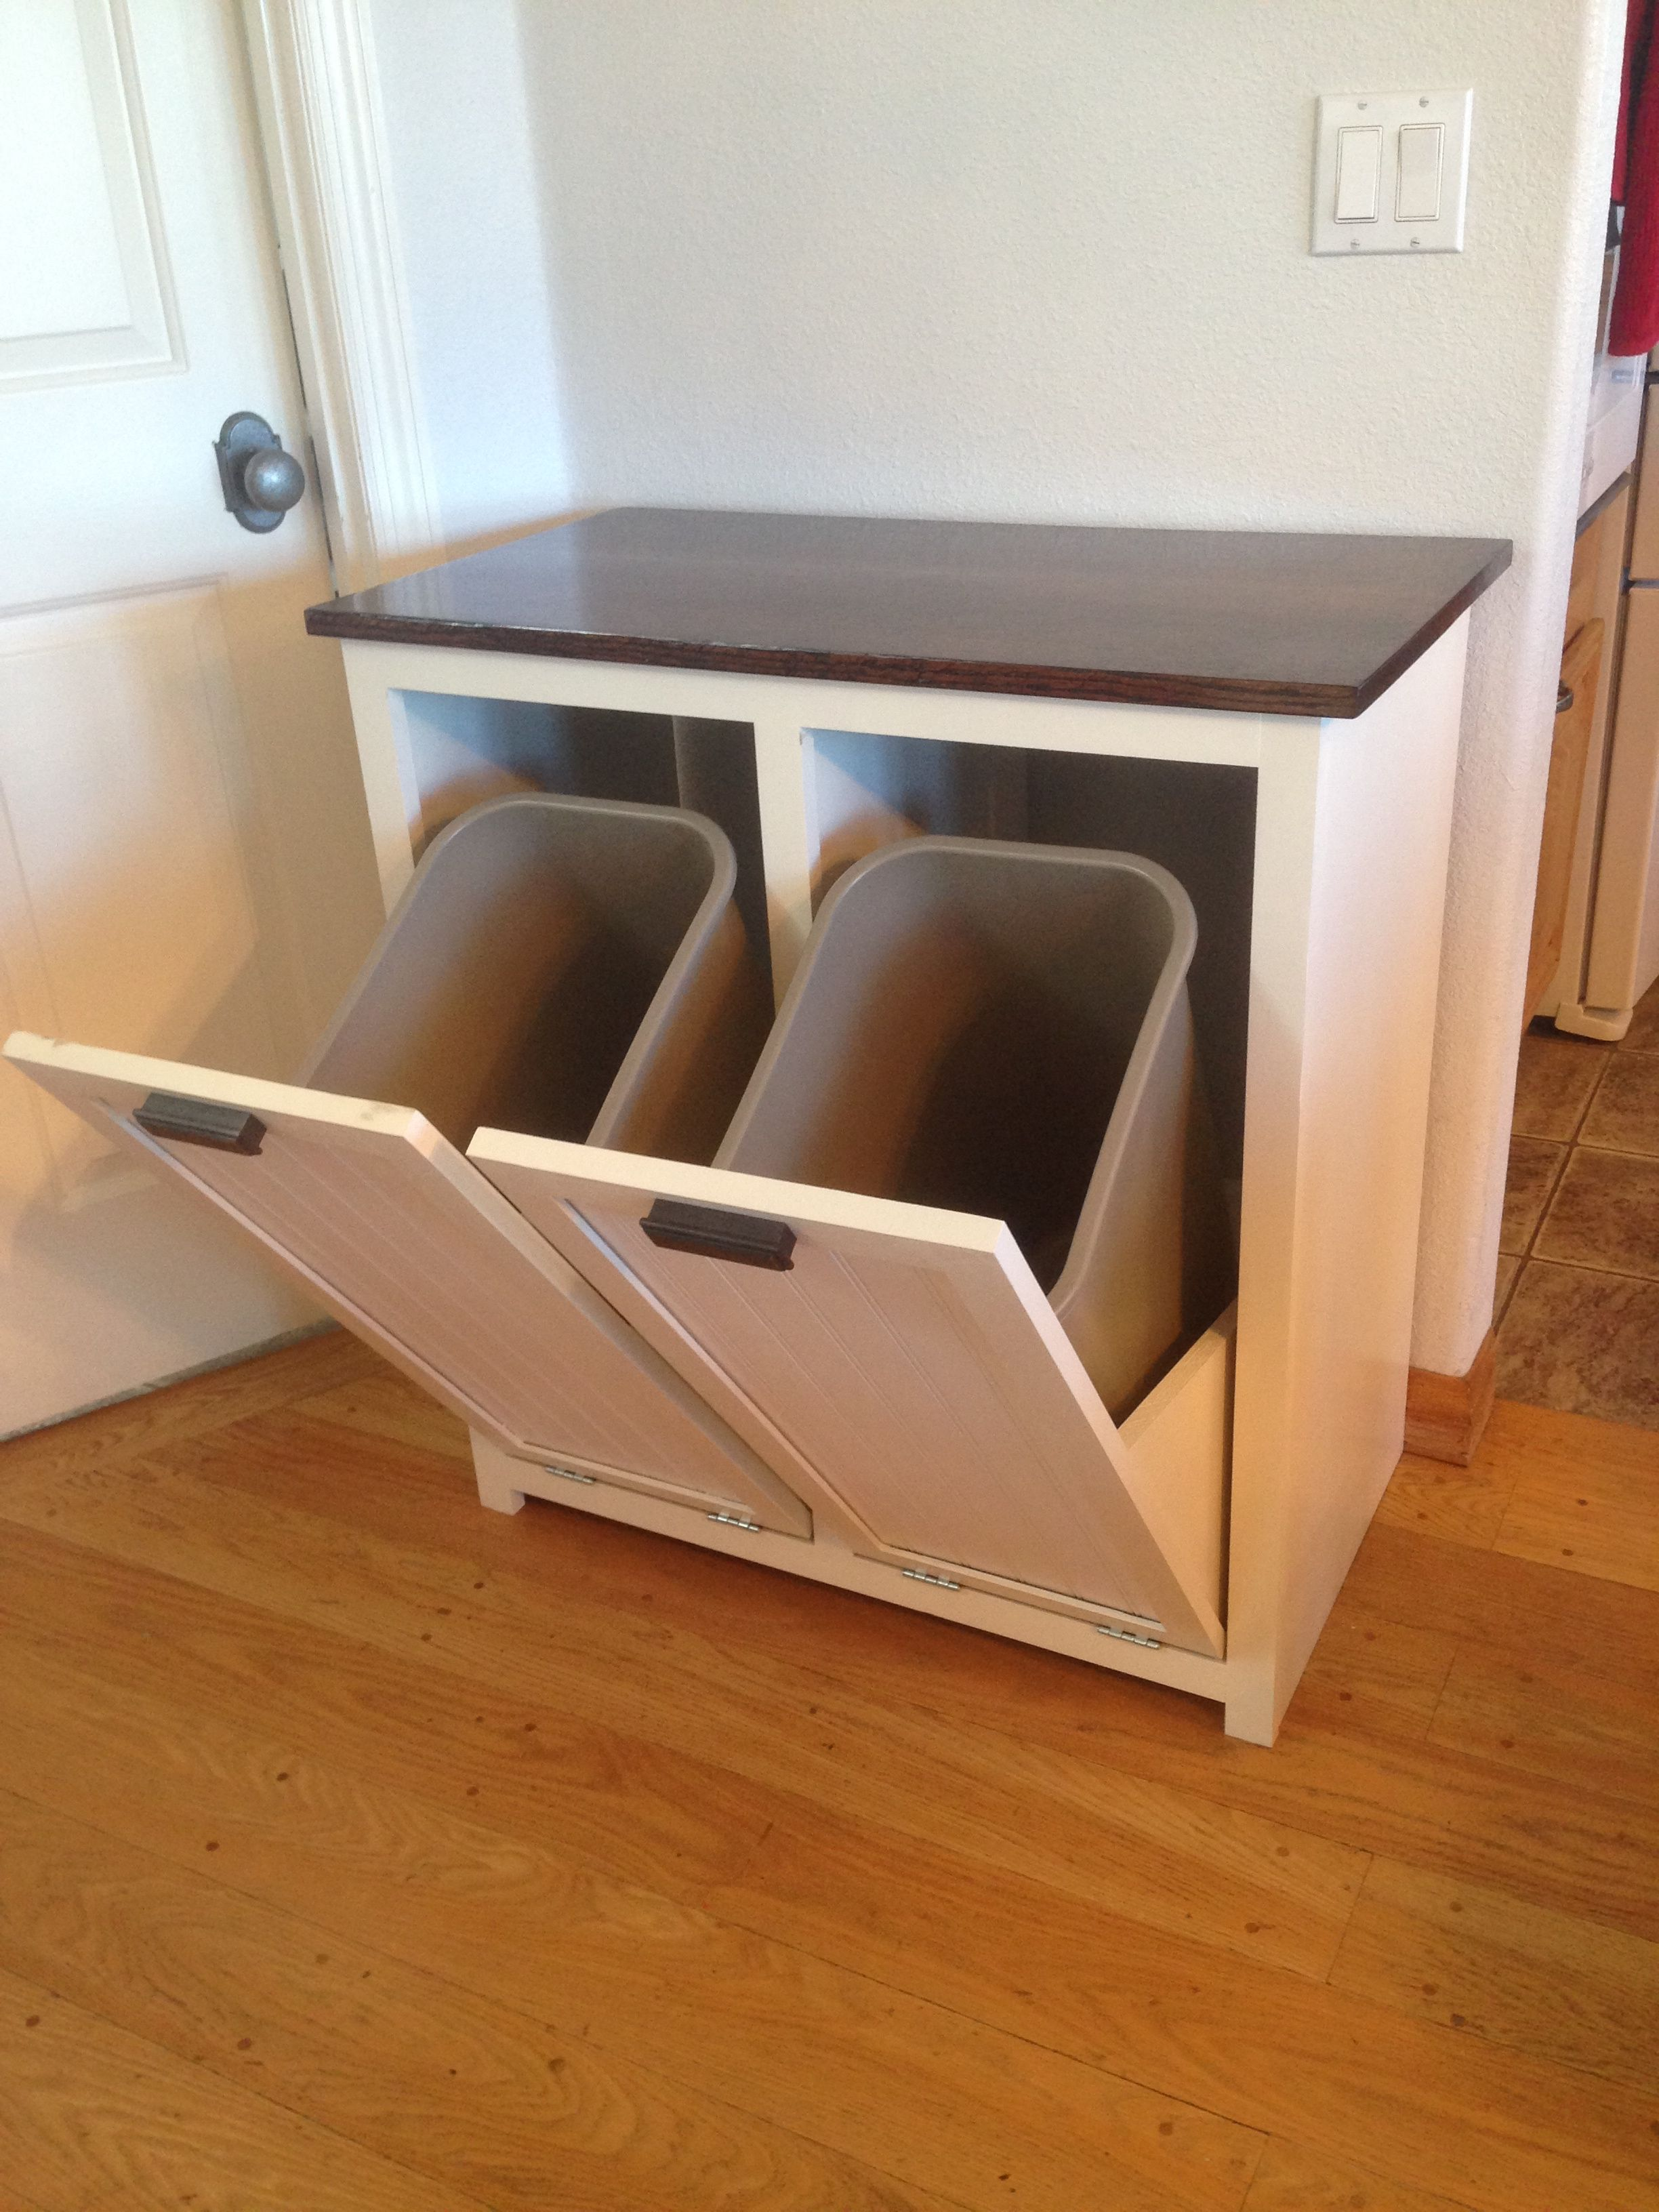 My Wife Asked Me To Build Something To Hide The Trash And Recycling Cans So That We Could Pretend That We Do Trash Can Cabinet Diy Home Decor Projects Home Diy